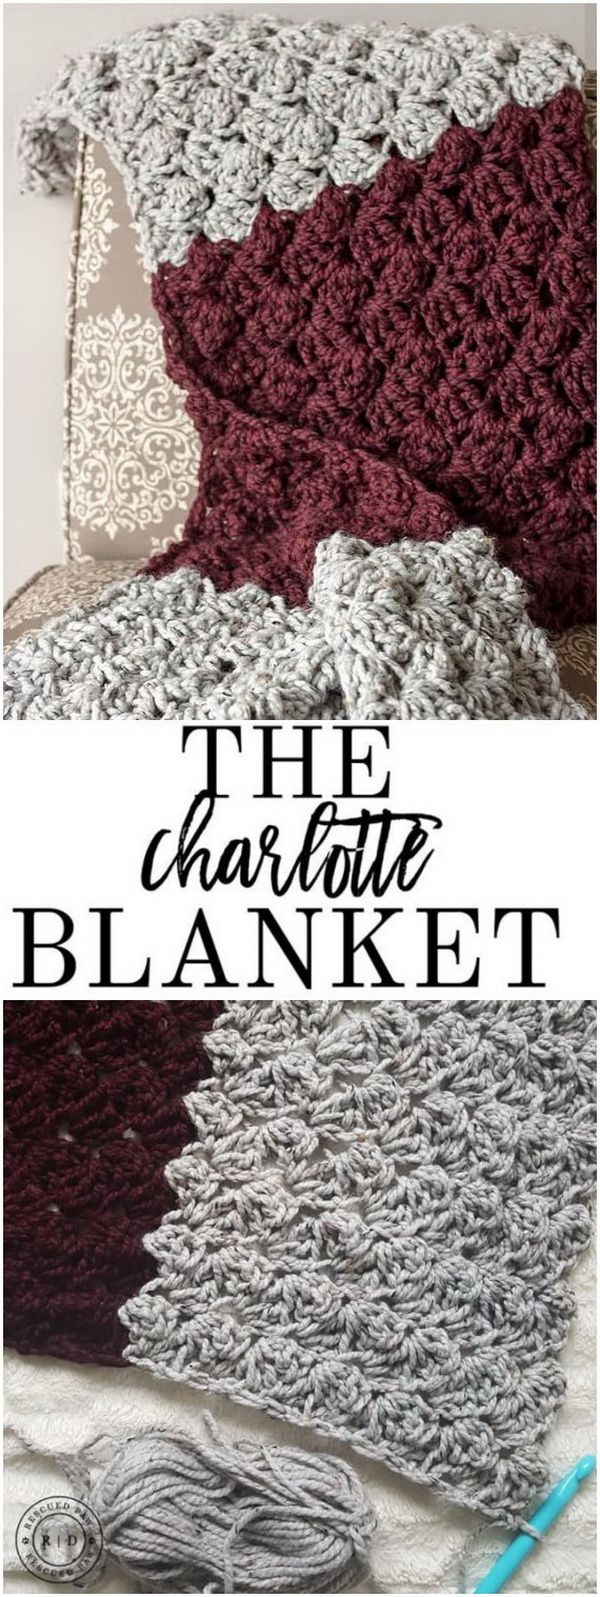 2375 best crochet afghans images on pinterest knitting cleaning 45 quick and easy crochet blanket patterns for beginners bankloansurffo Image collections